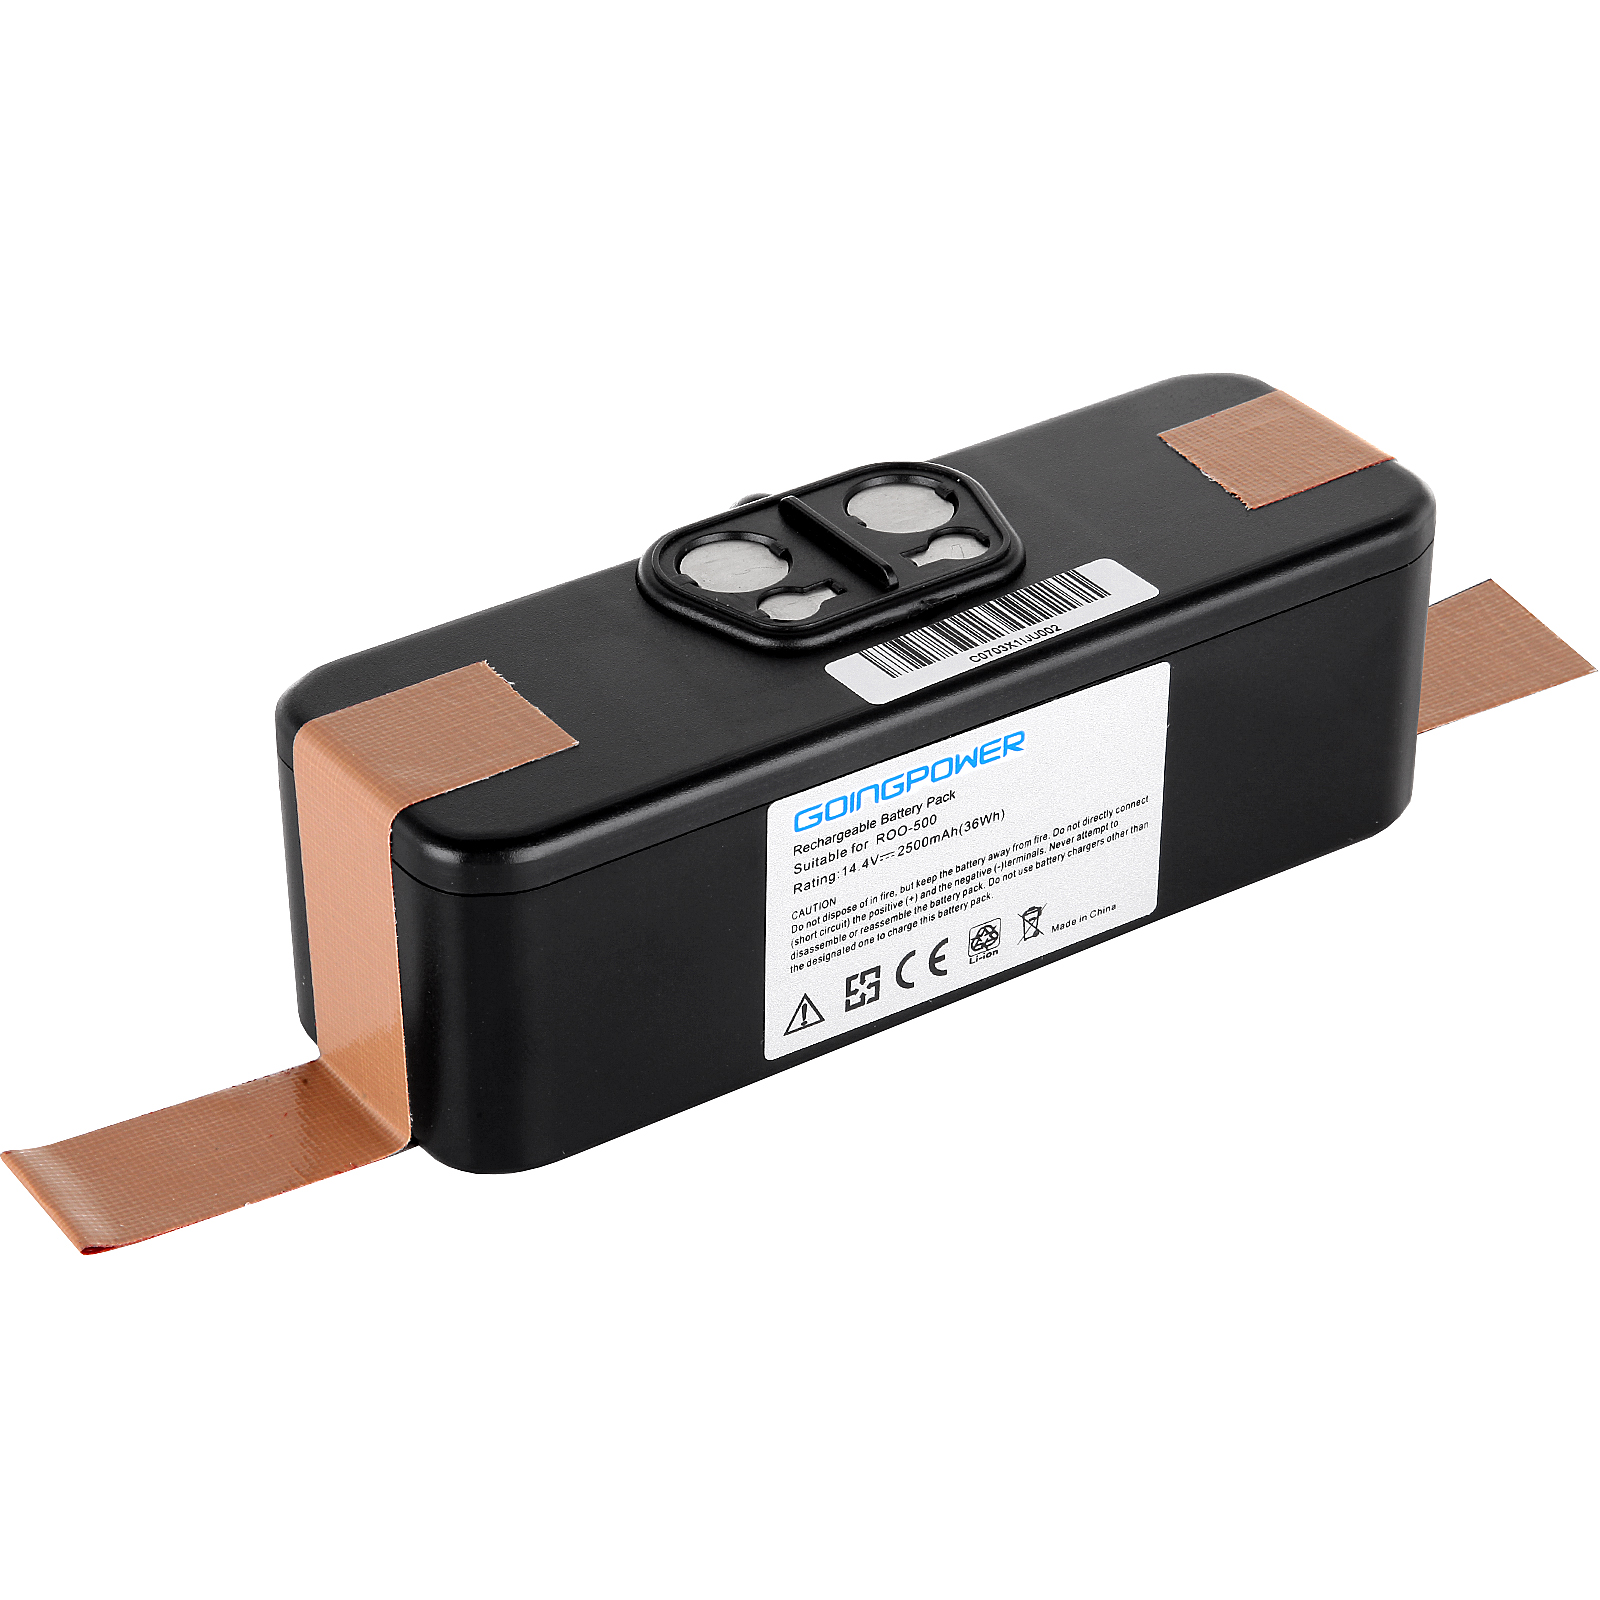 li ion high capacity battery for irobot roomba 500 600 700 800 series ebay. Black Bedroom Furniture Sets. Home Design Ideas